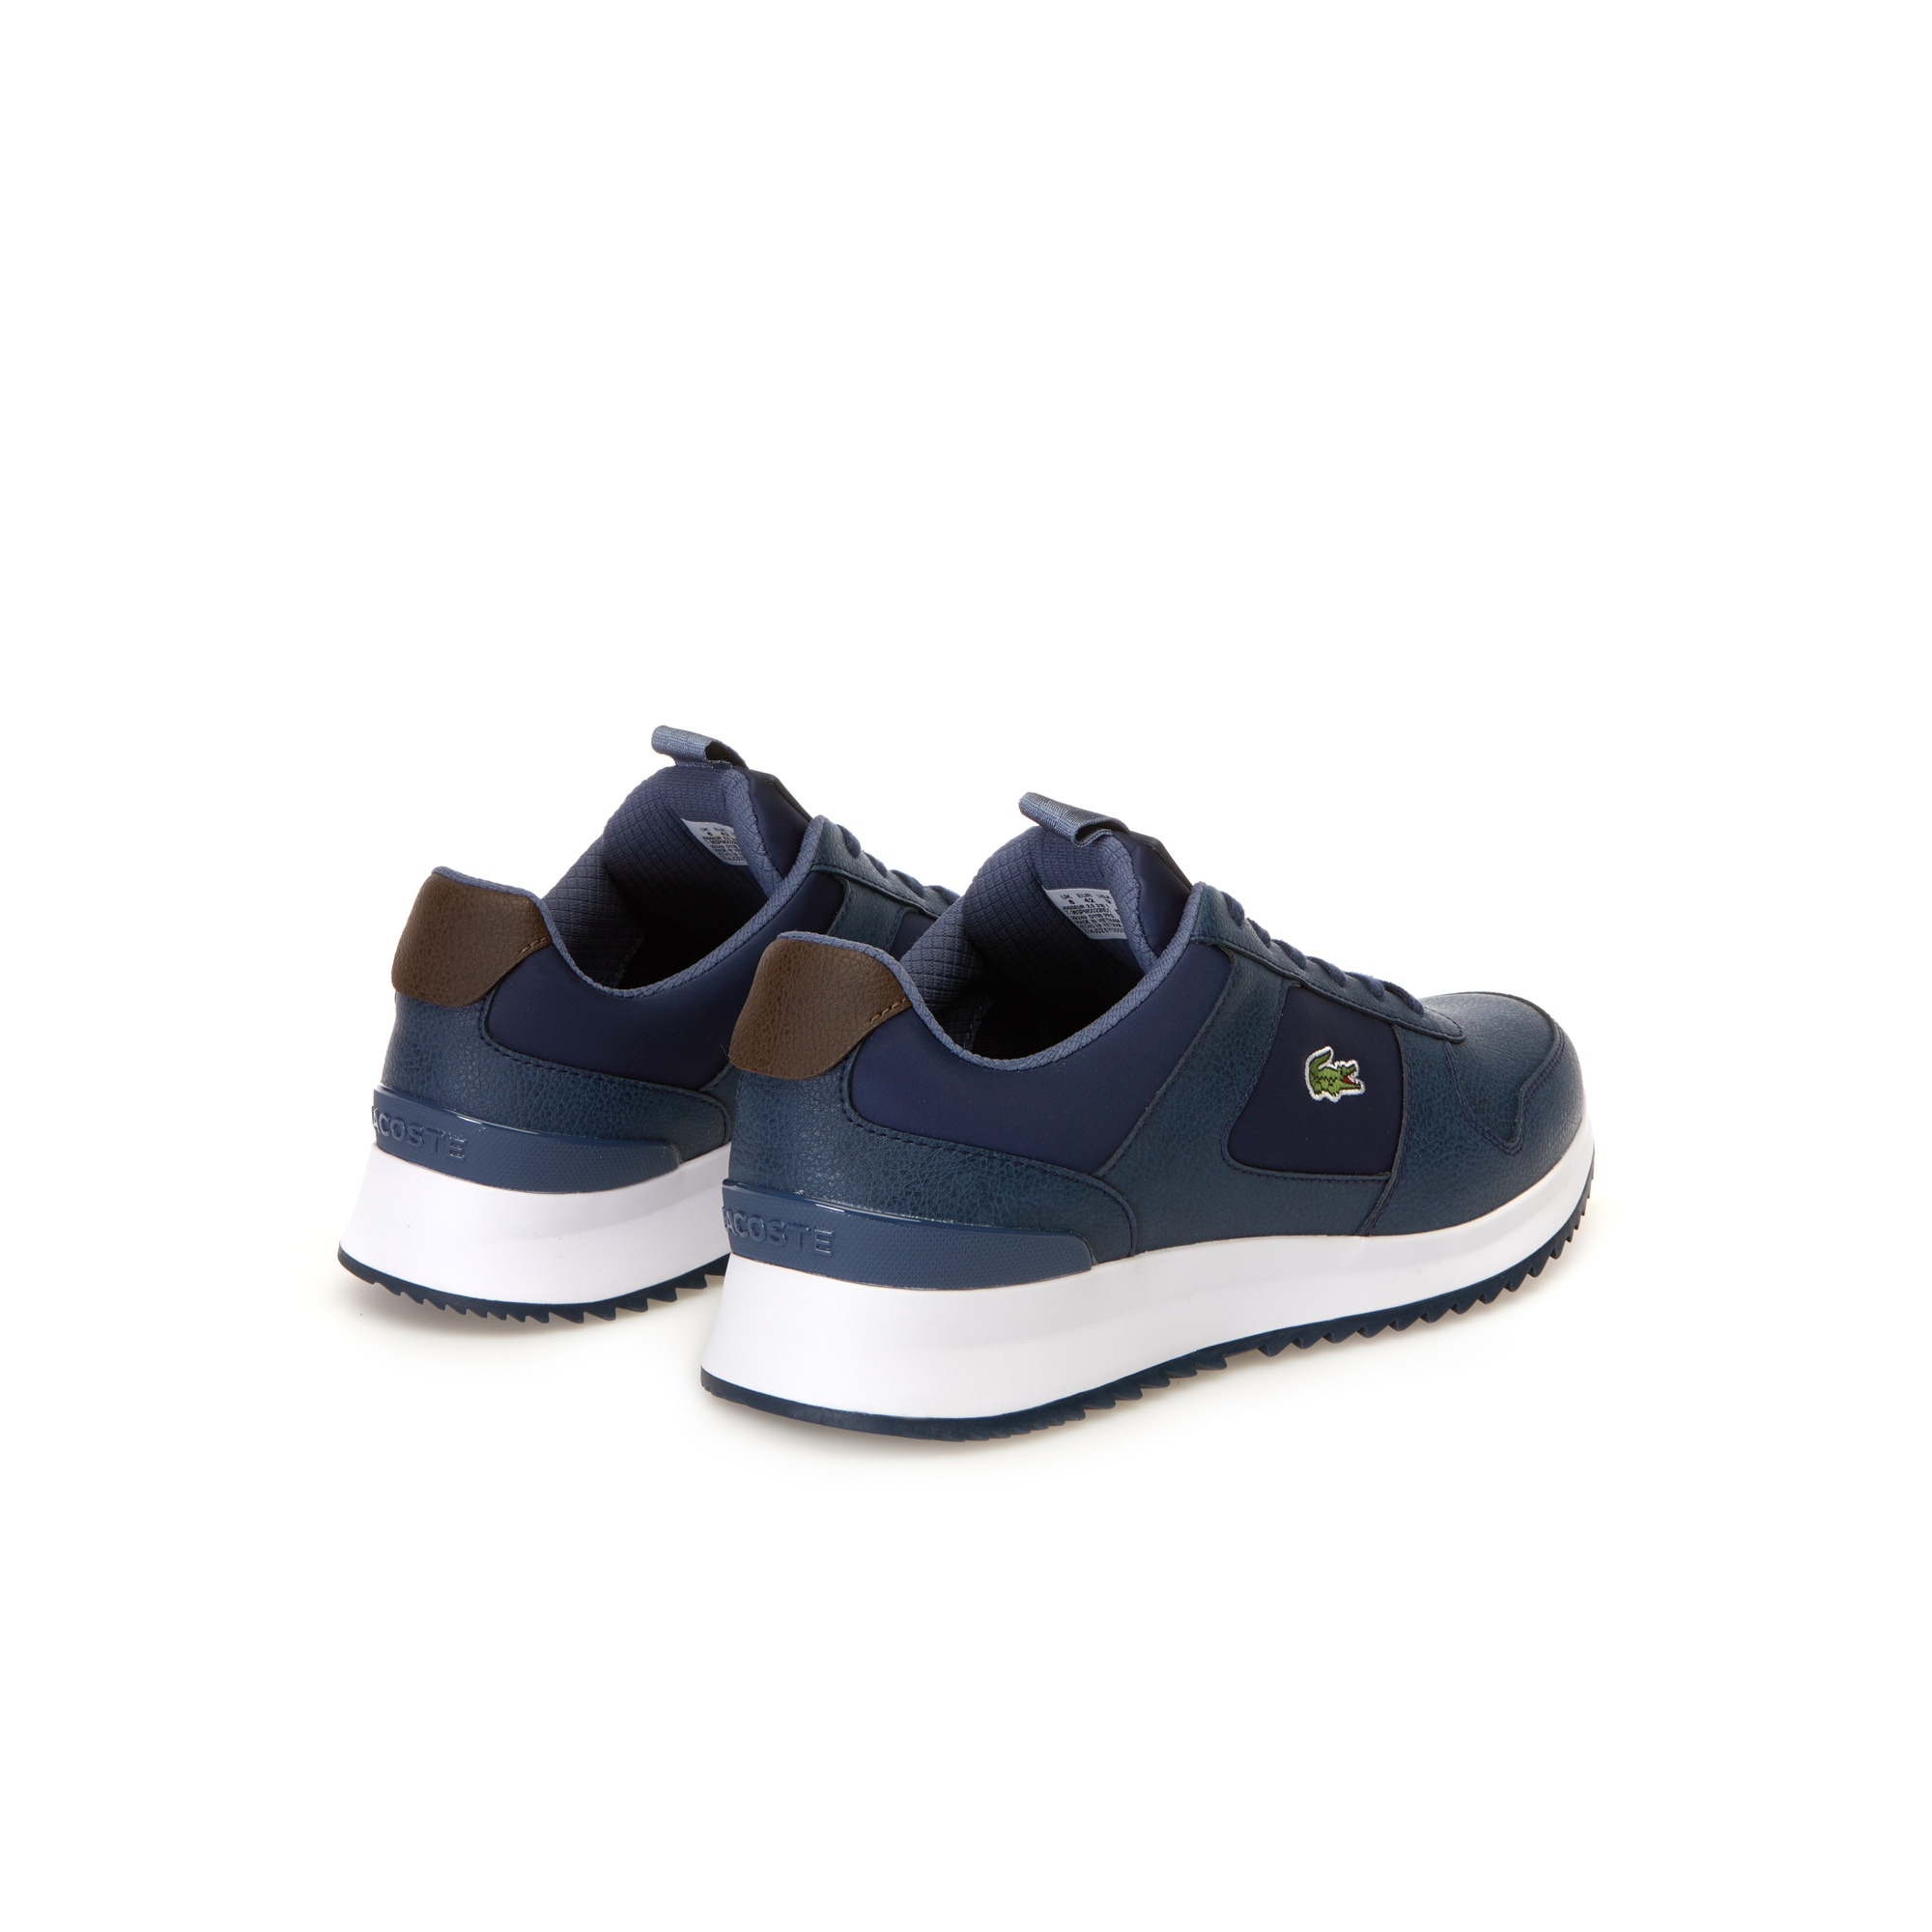 574ed1394811c Men s Joggeur 2.0 Leather Trainers